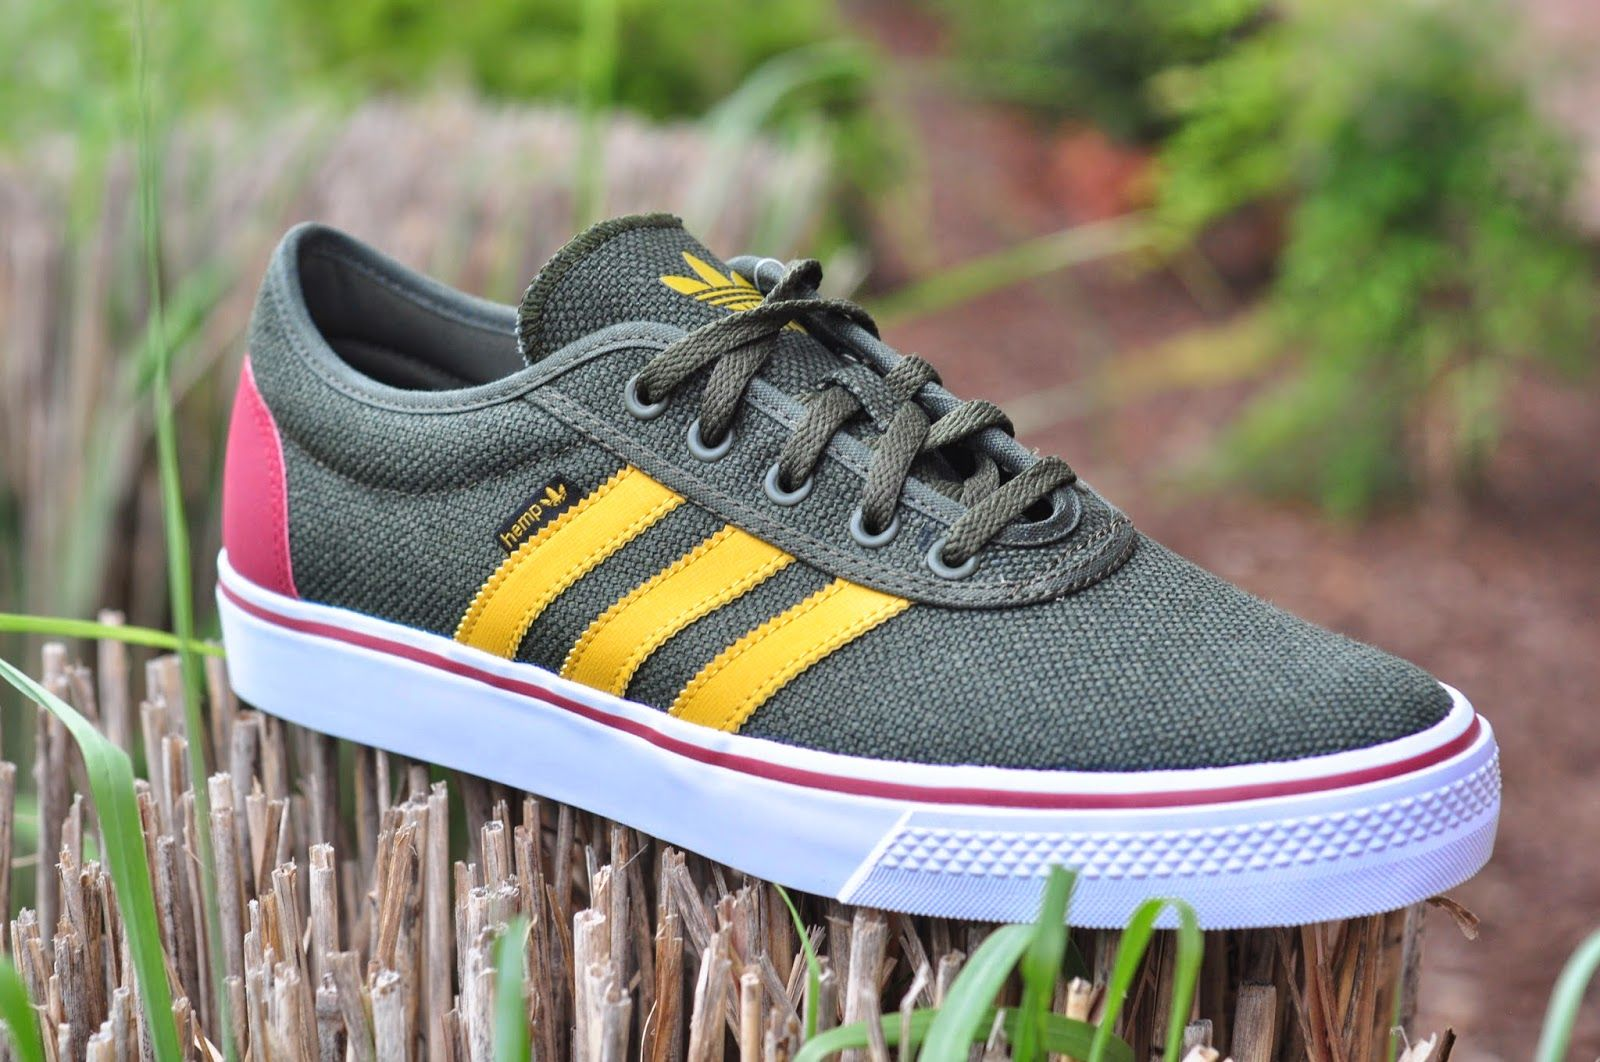 An Adidas Adi Ease in this great Hemp color. Grab it! Your